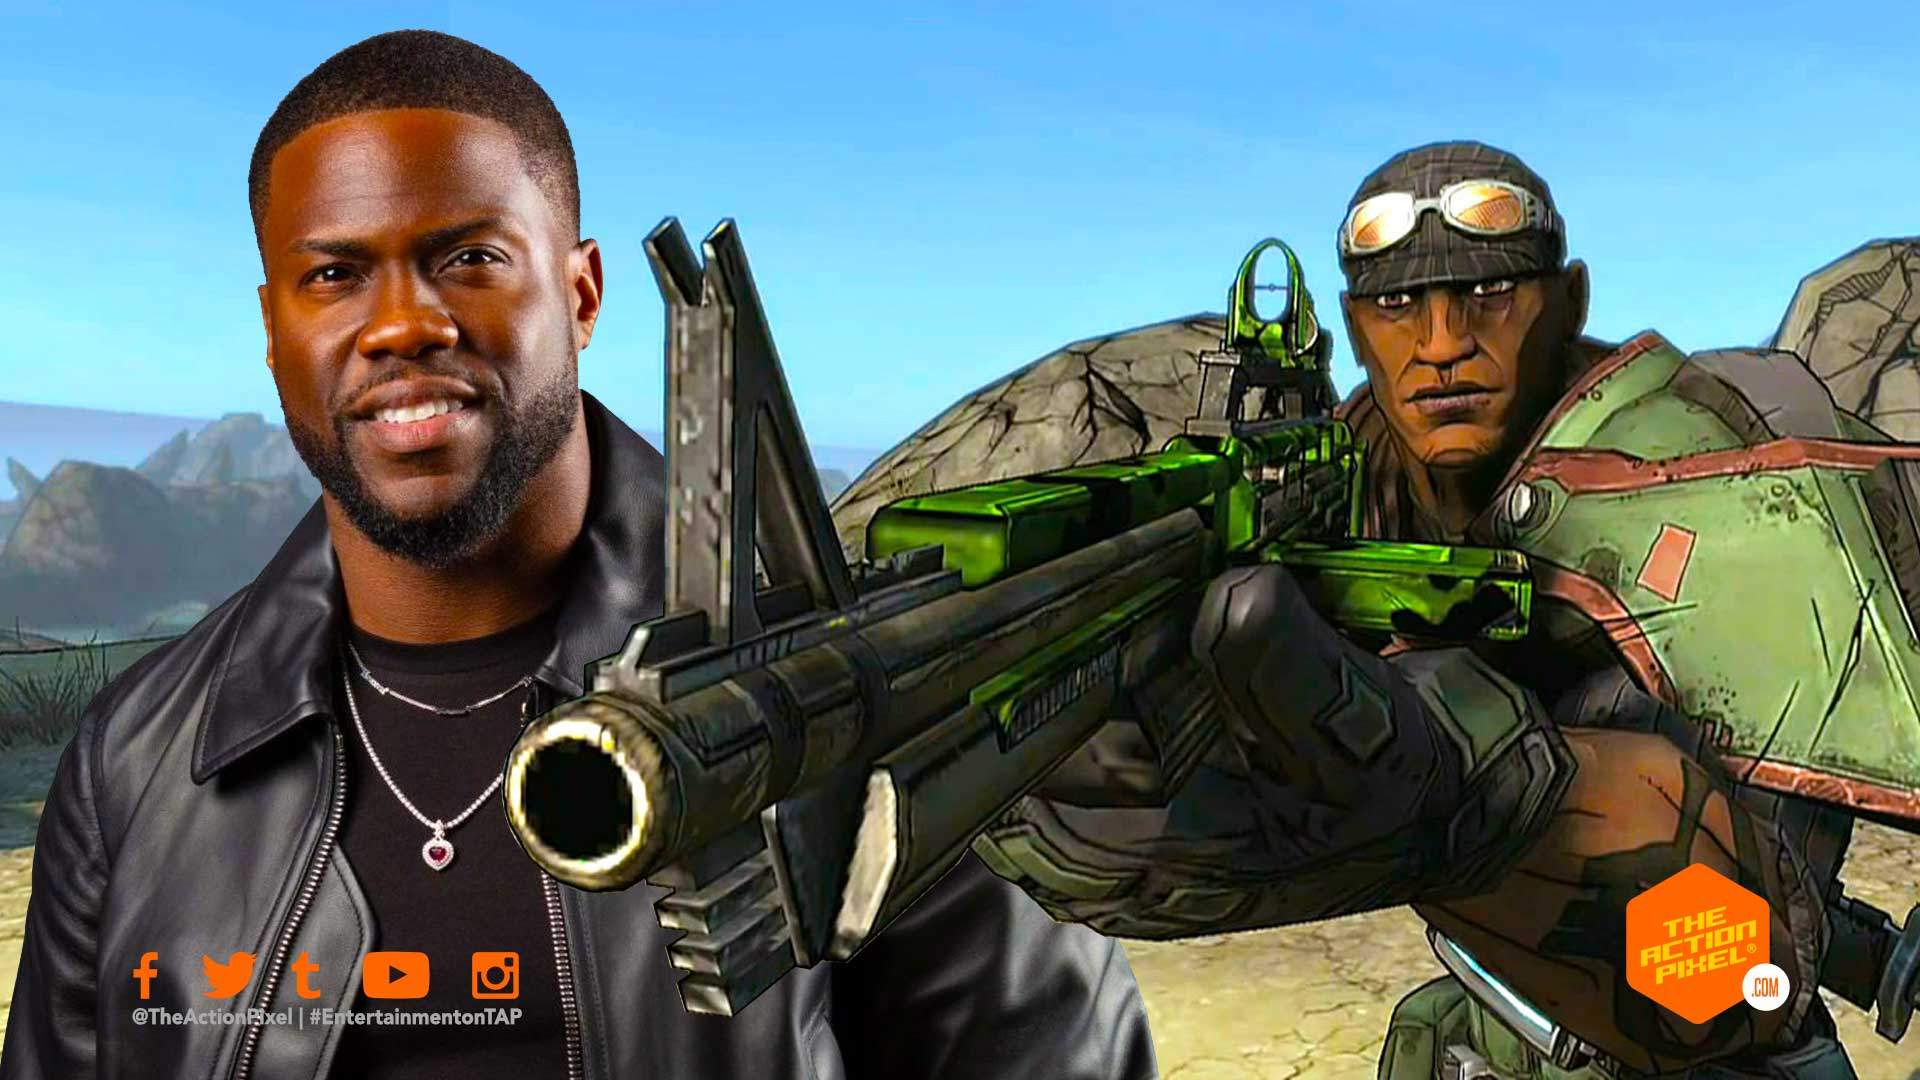 kevin hart, borderlands, entertainment on tap, gearbox software, the action pixel, entertainment on tap, featured,